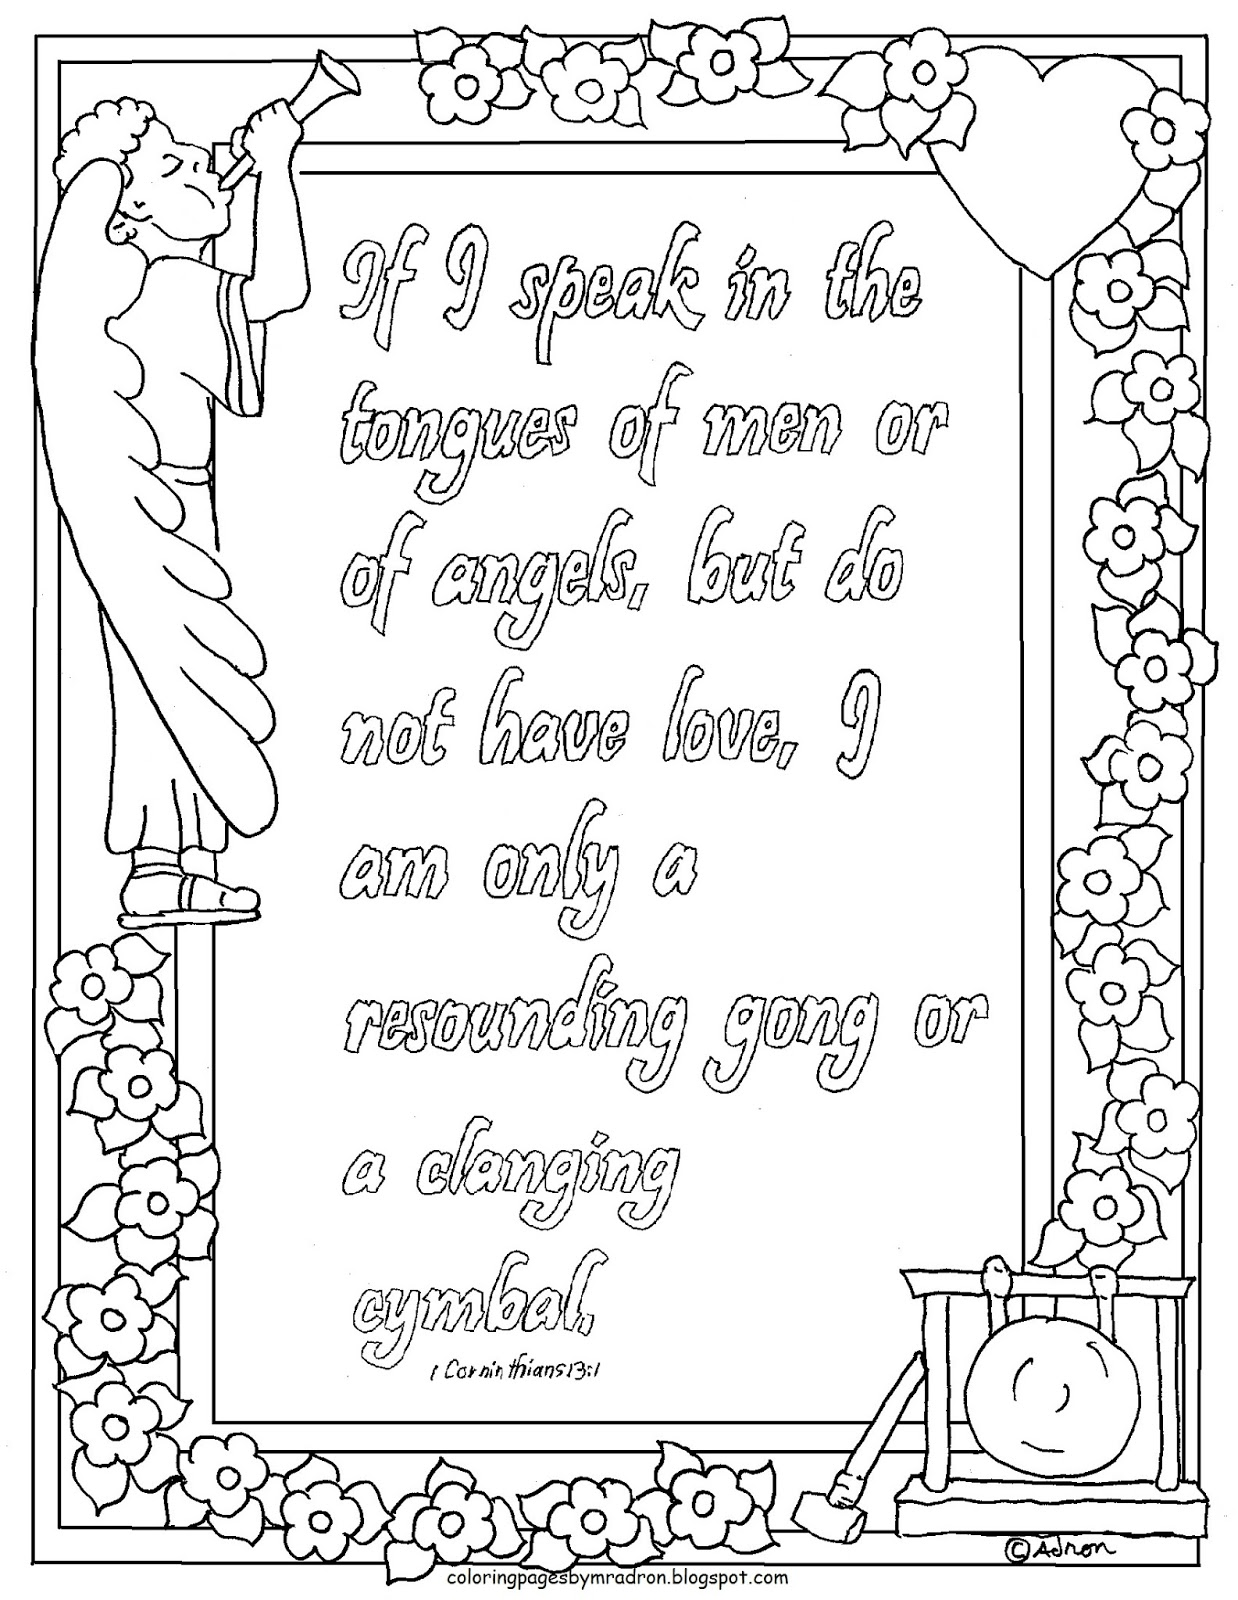 printable 1 corinthians 12 coloring pages coloring pages for kids by mr adron 2 corinthians 129 coloring 12 printable pages corinthians 1